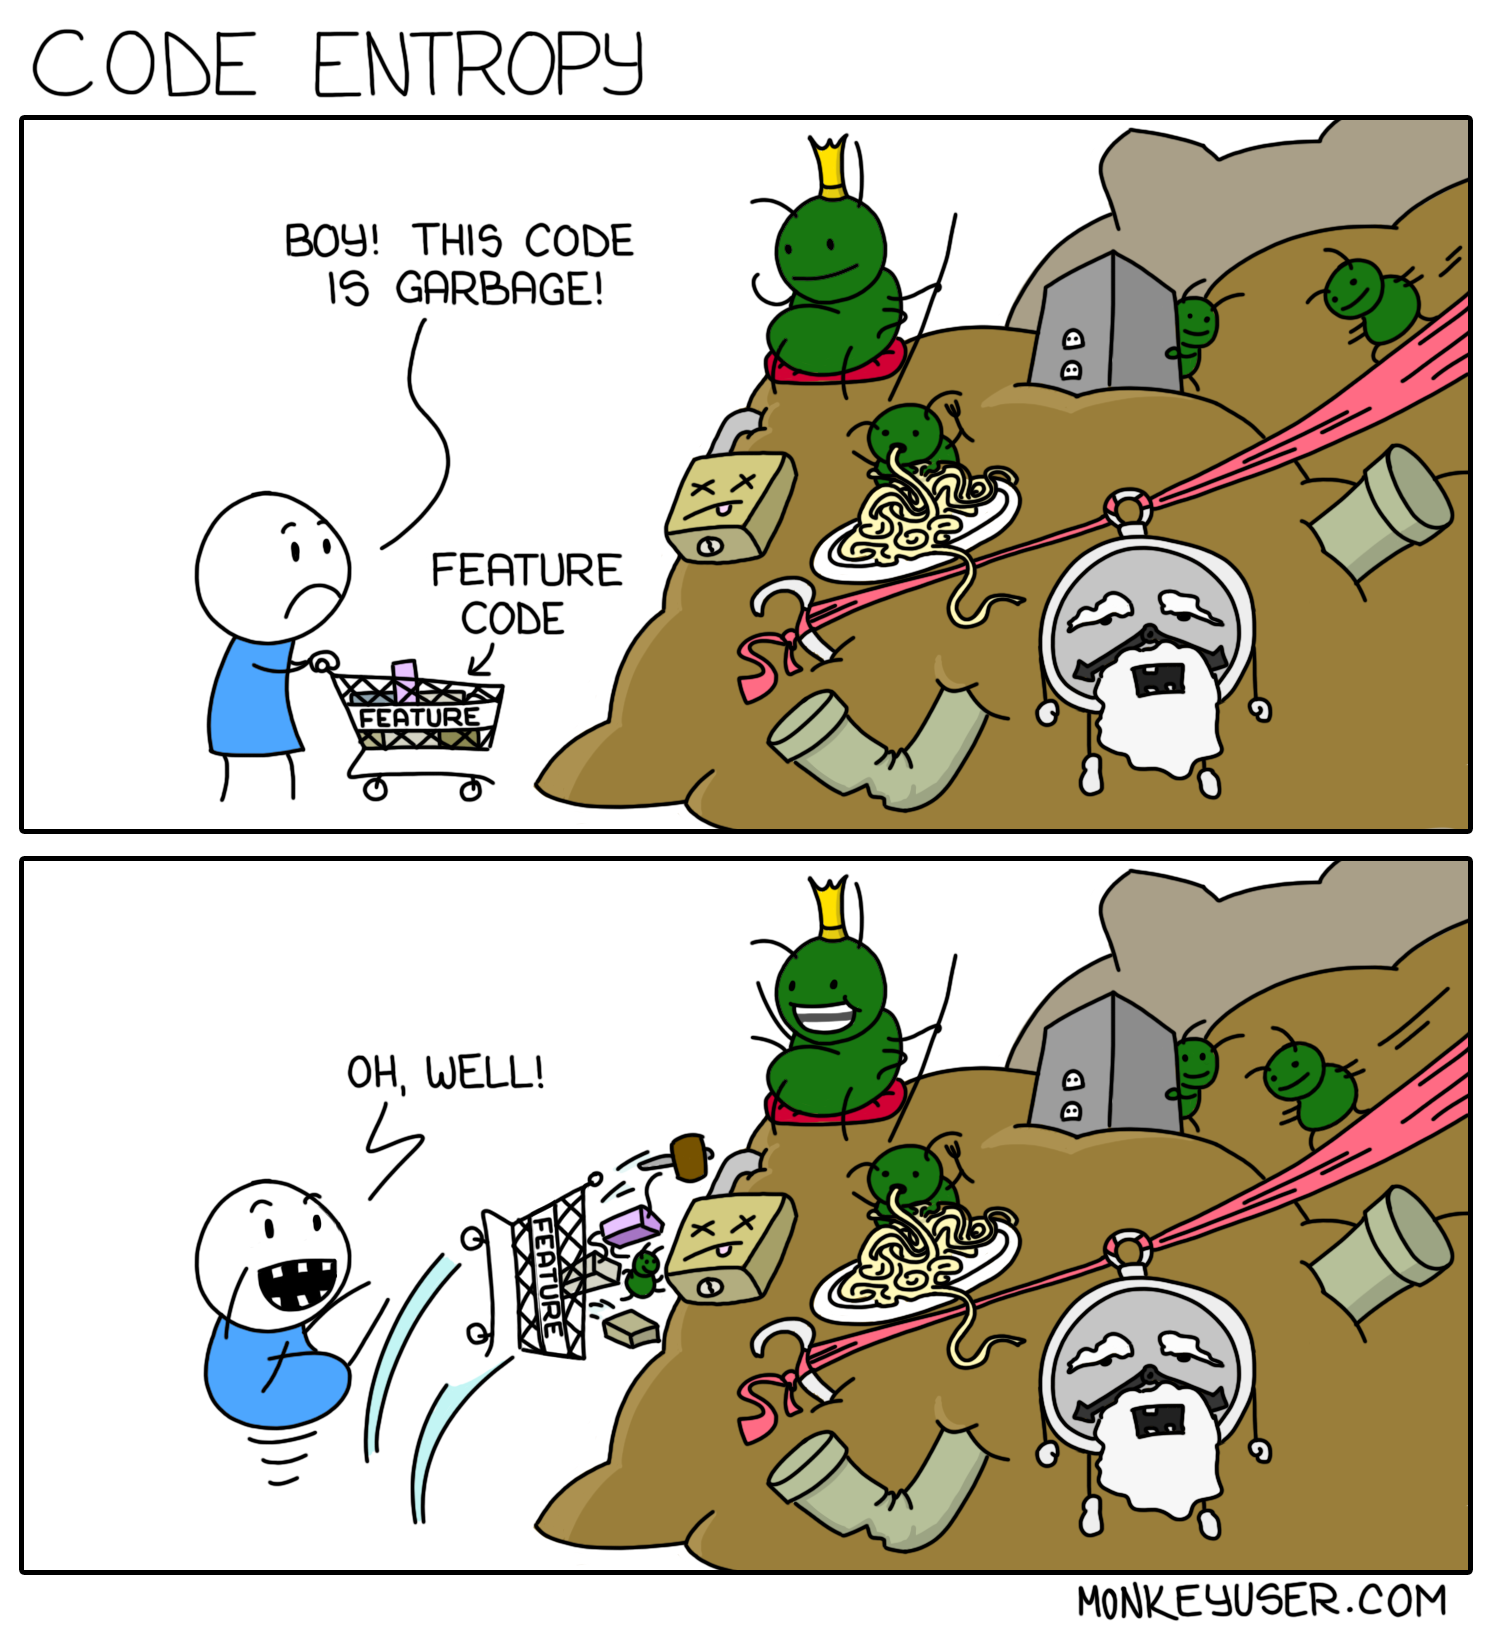 Entropy in software